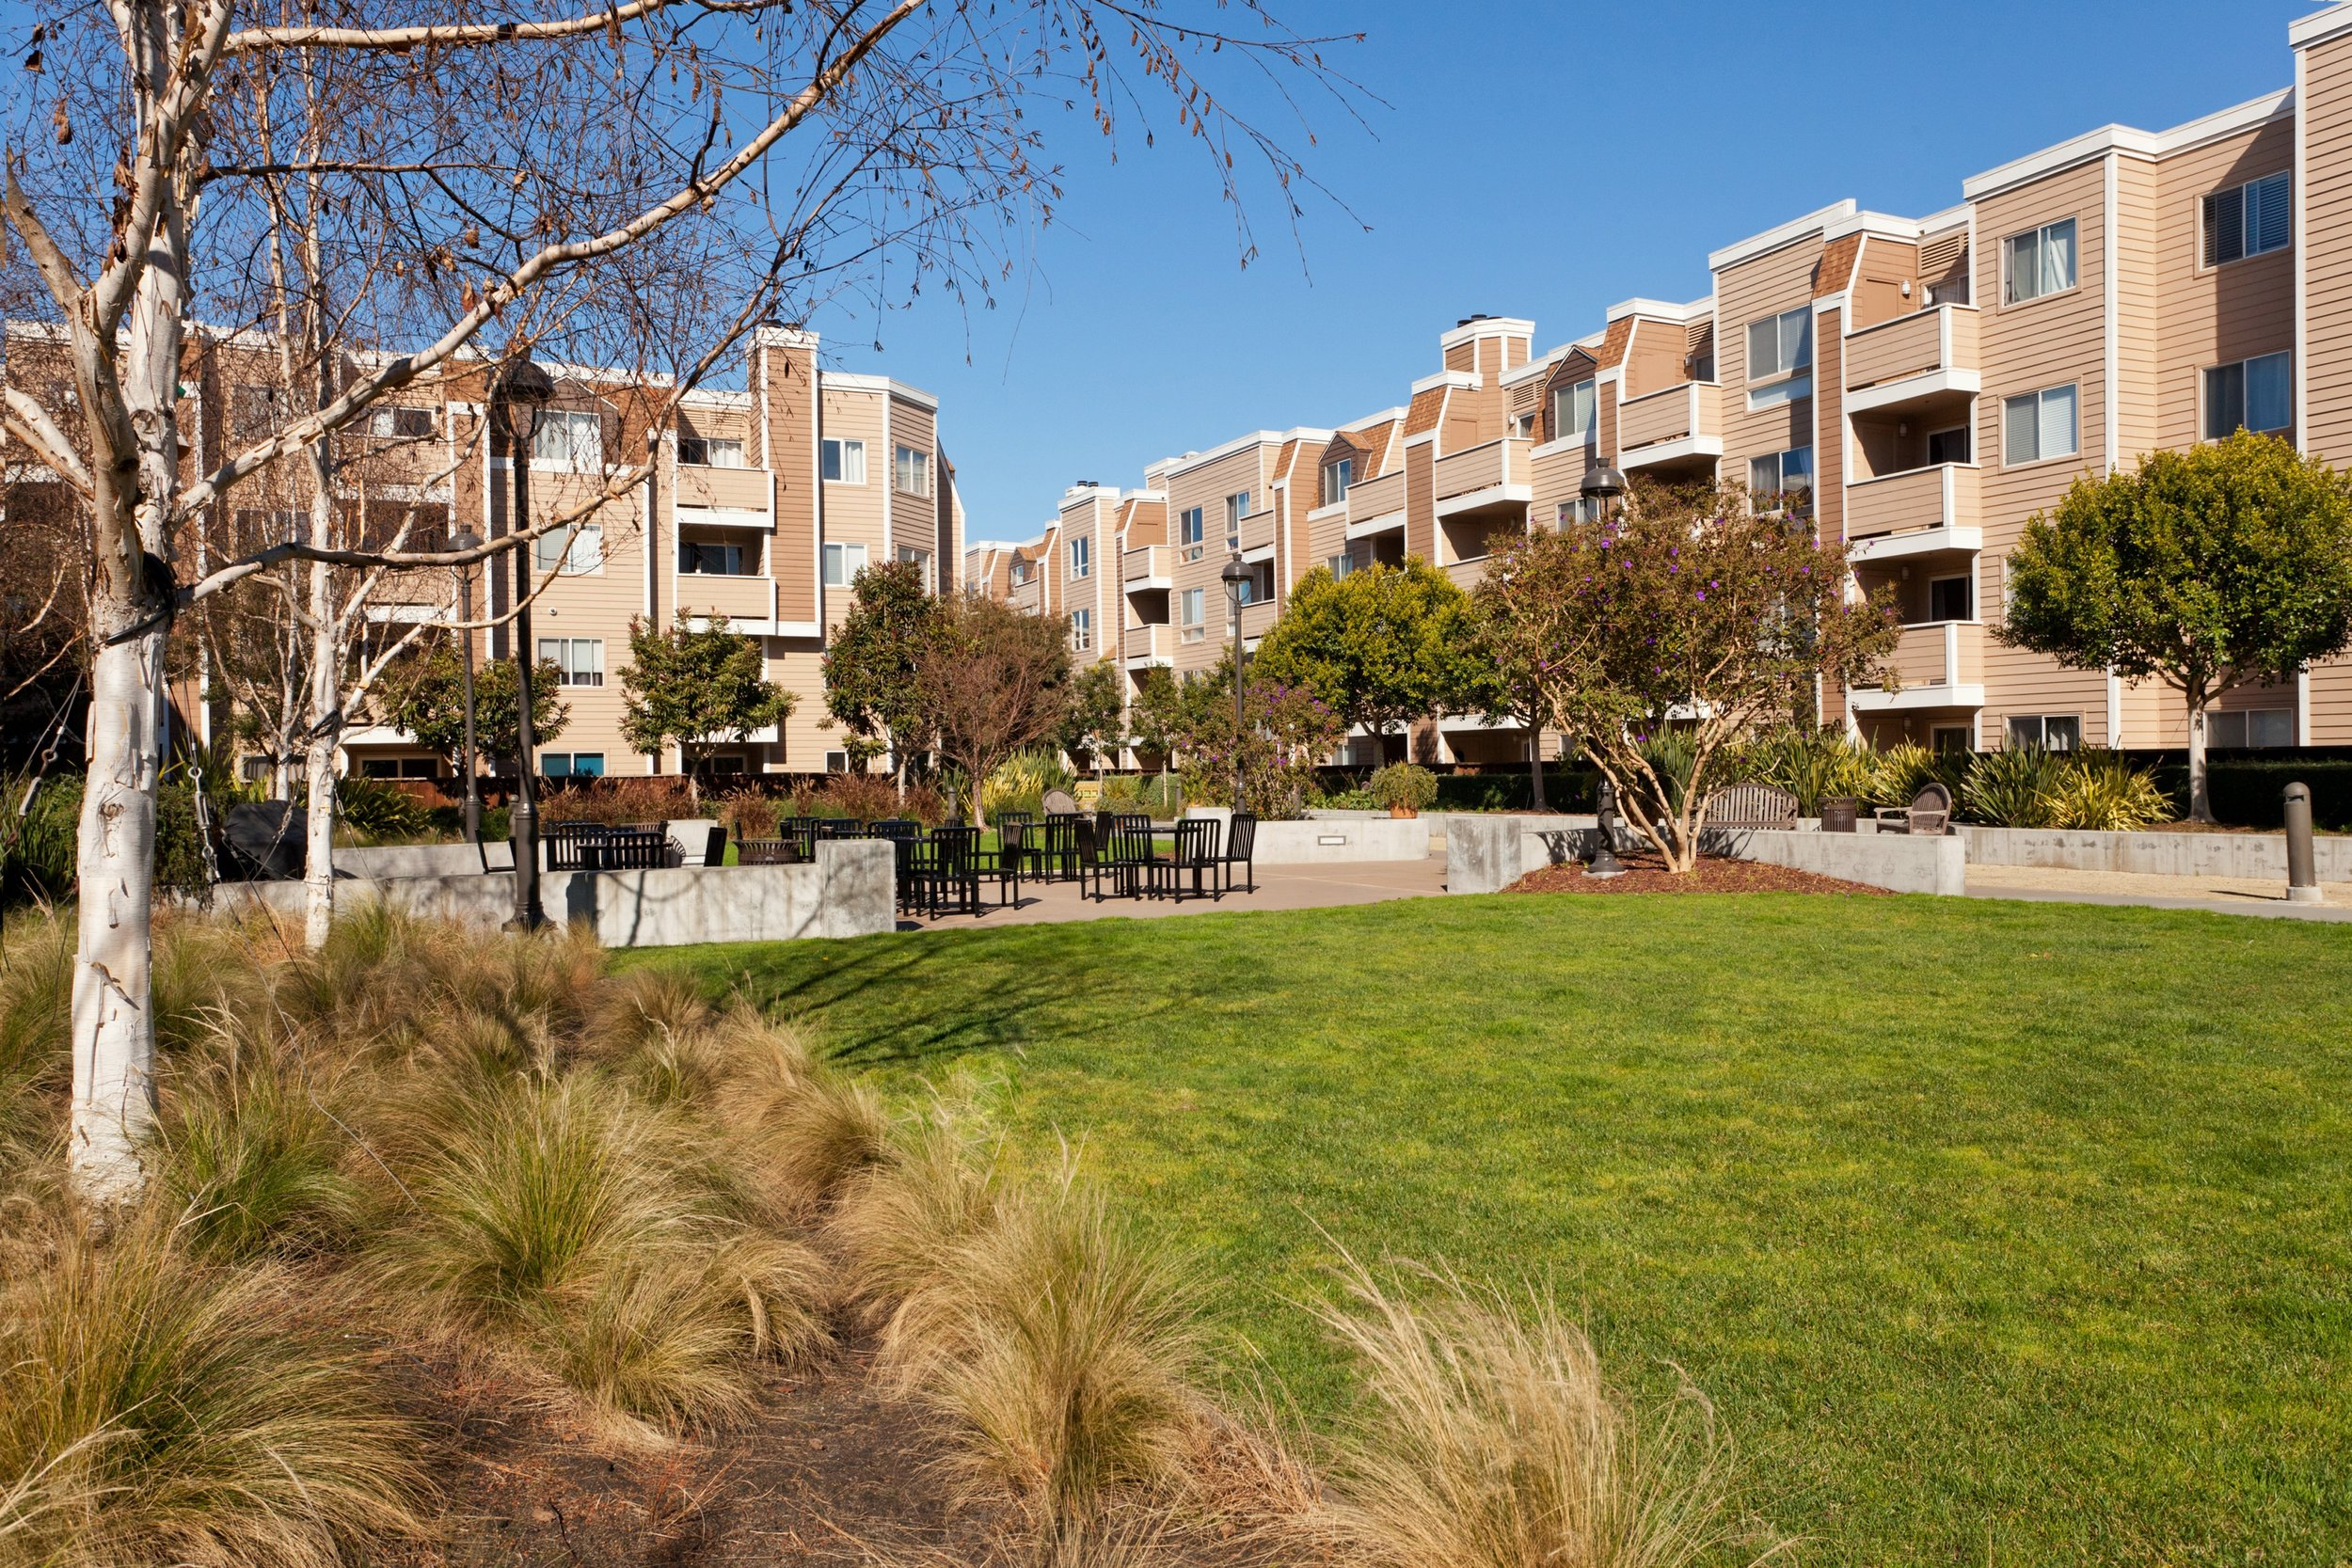 SOLD | 6400 CHRISTIE AVENUE #2412, EMERYVILLE $525,000